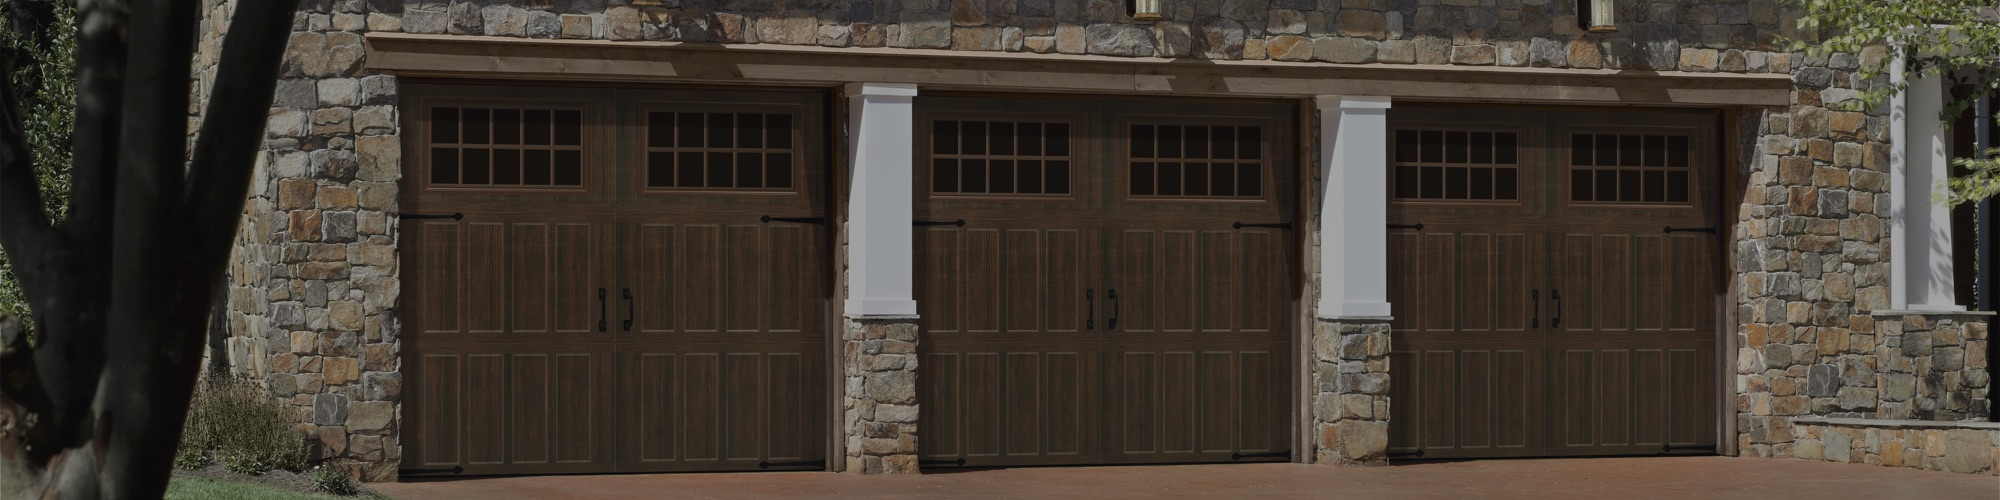 Specialty Garage Doors - Increase Your